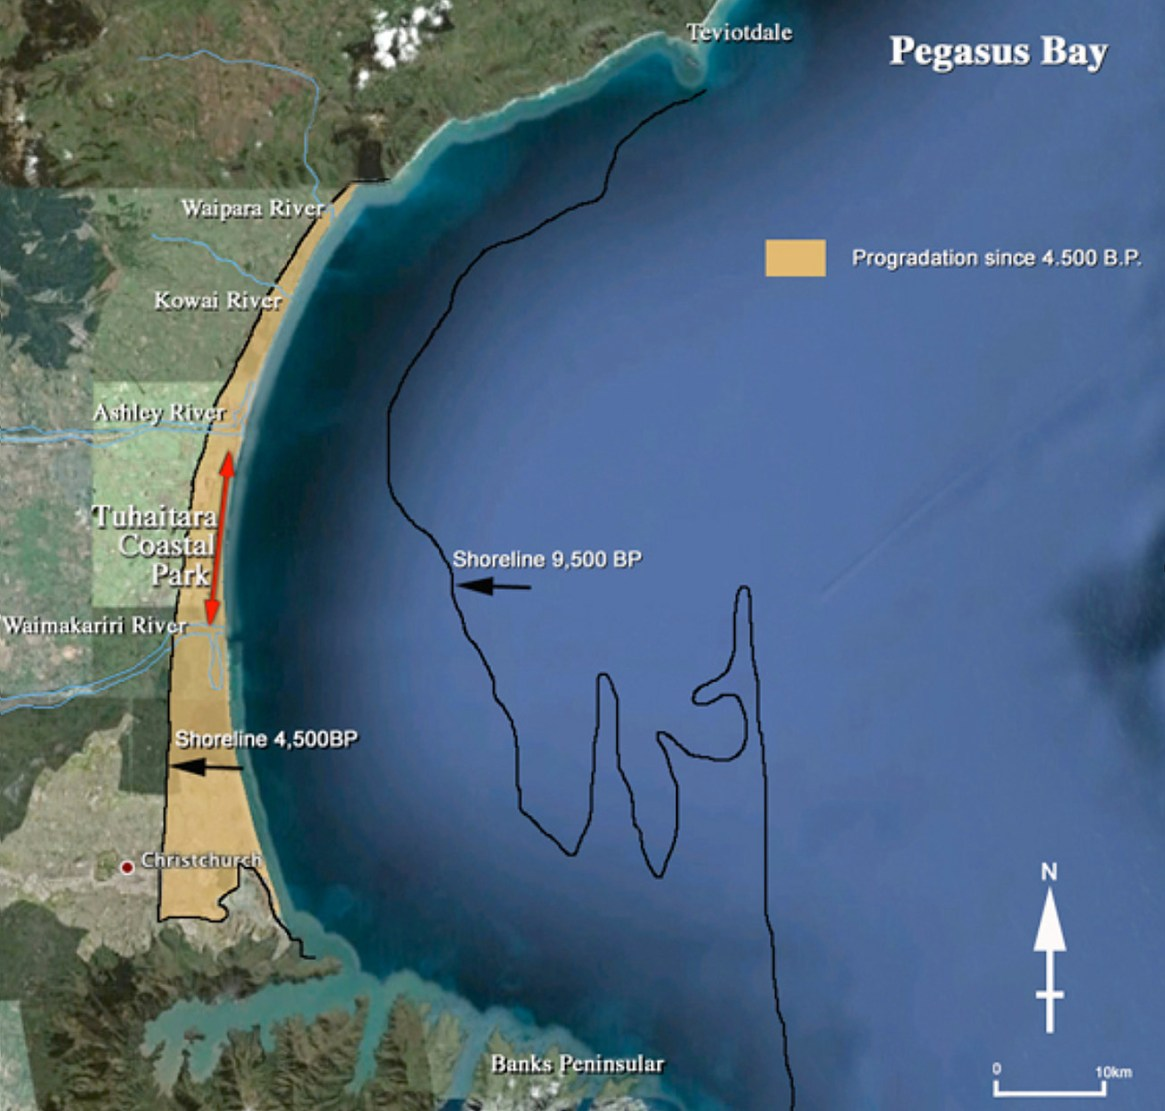 Fig. 3: The changing coastline of Pegasus Bay: 9,500 years ago ('before present' or 'BP'), the shoreline was much further out to sea. Between 9,500-4,500 years ago the coast was drowned as eustatic sea levels rose. By 4,500 year ago, the climate and with it global sea levels were stable. Sediment, mostly from the Waimakariri River, built the coastline outwards (mustard coloured area of 'progradation'). (Image: Whitelaw).